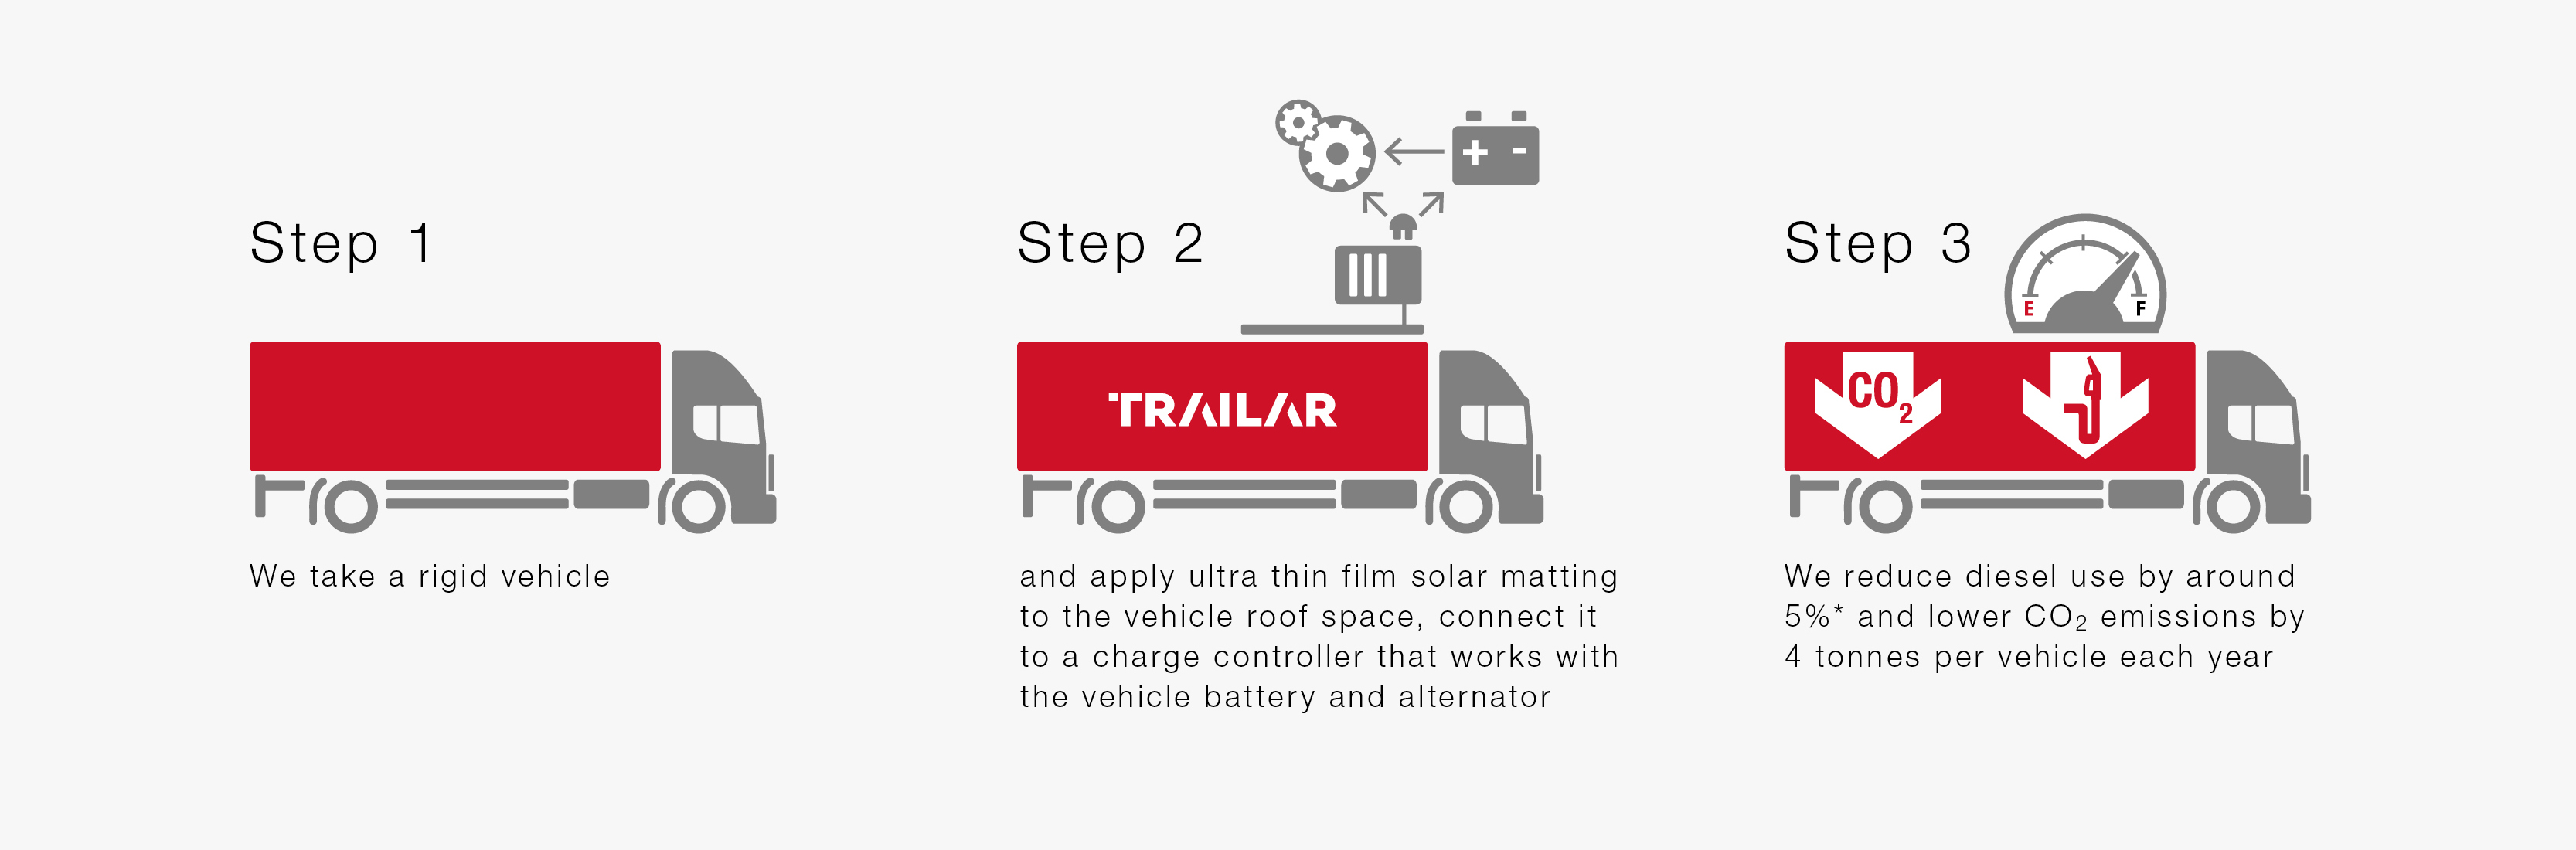 Trailar 3 steps to improved fuel economy